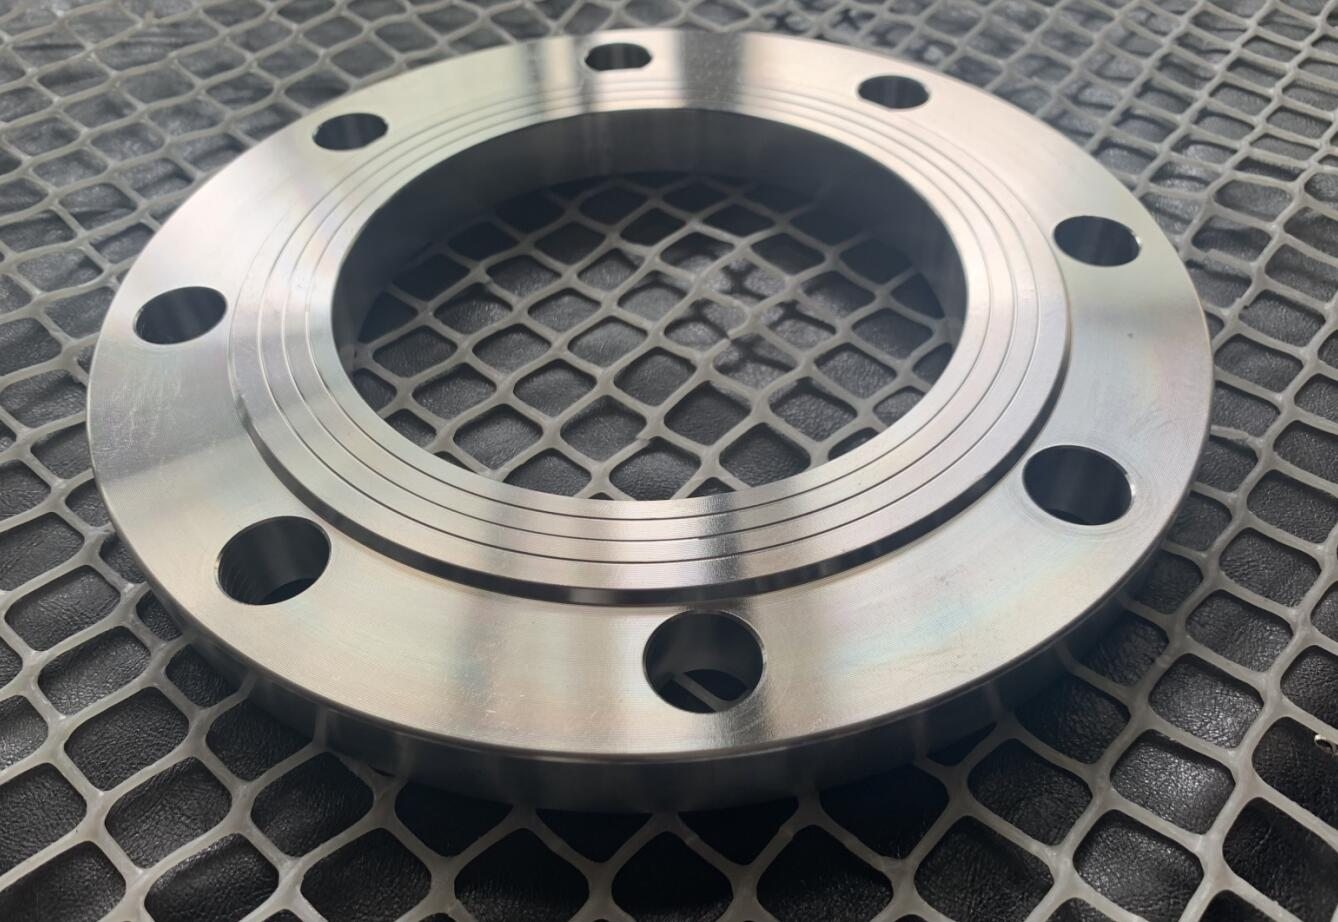 Hg/T20594-2009 Slip-on Welding Flange CDPL051